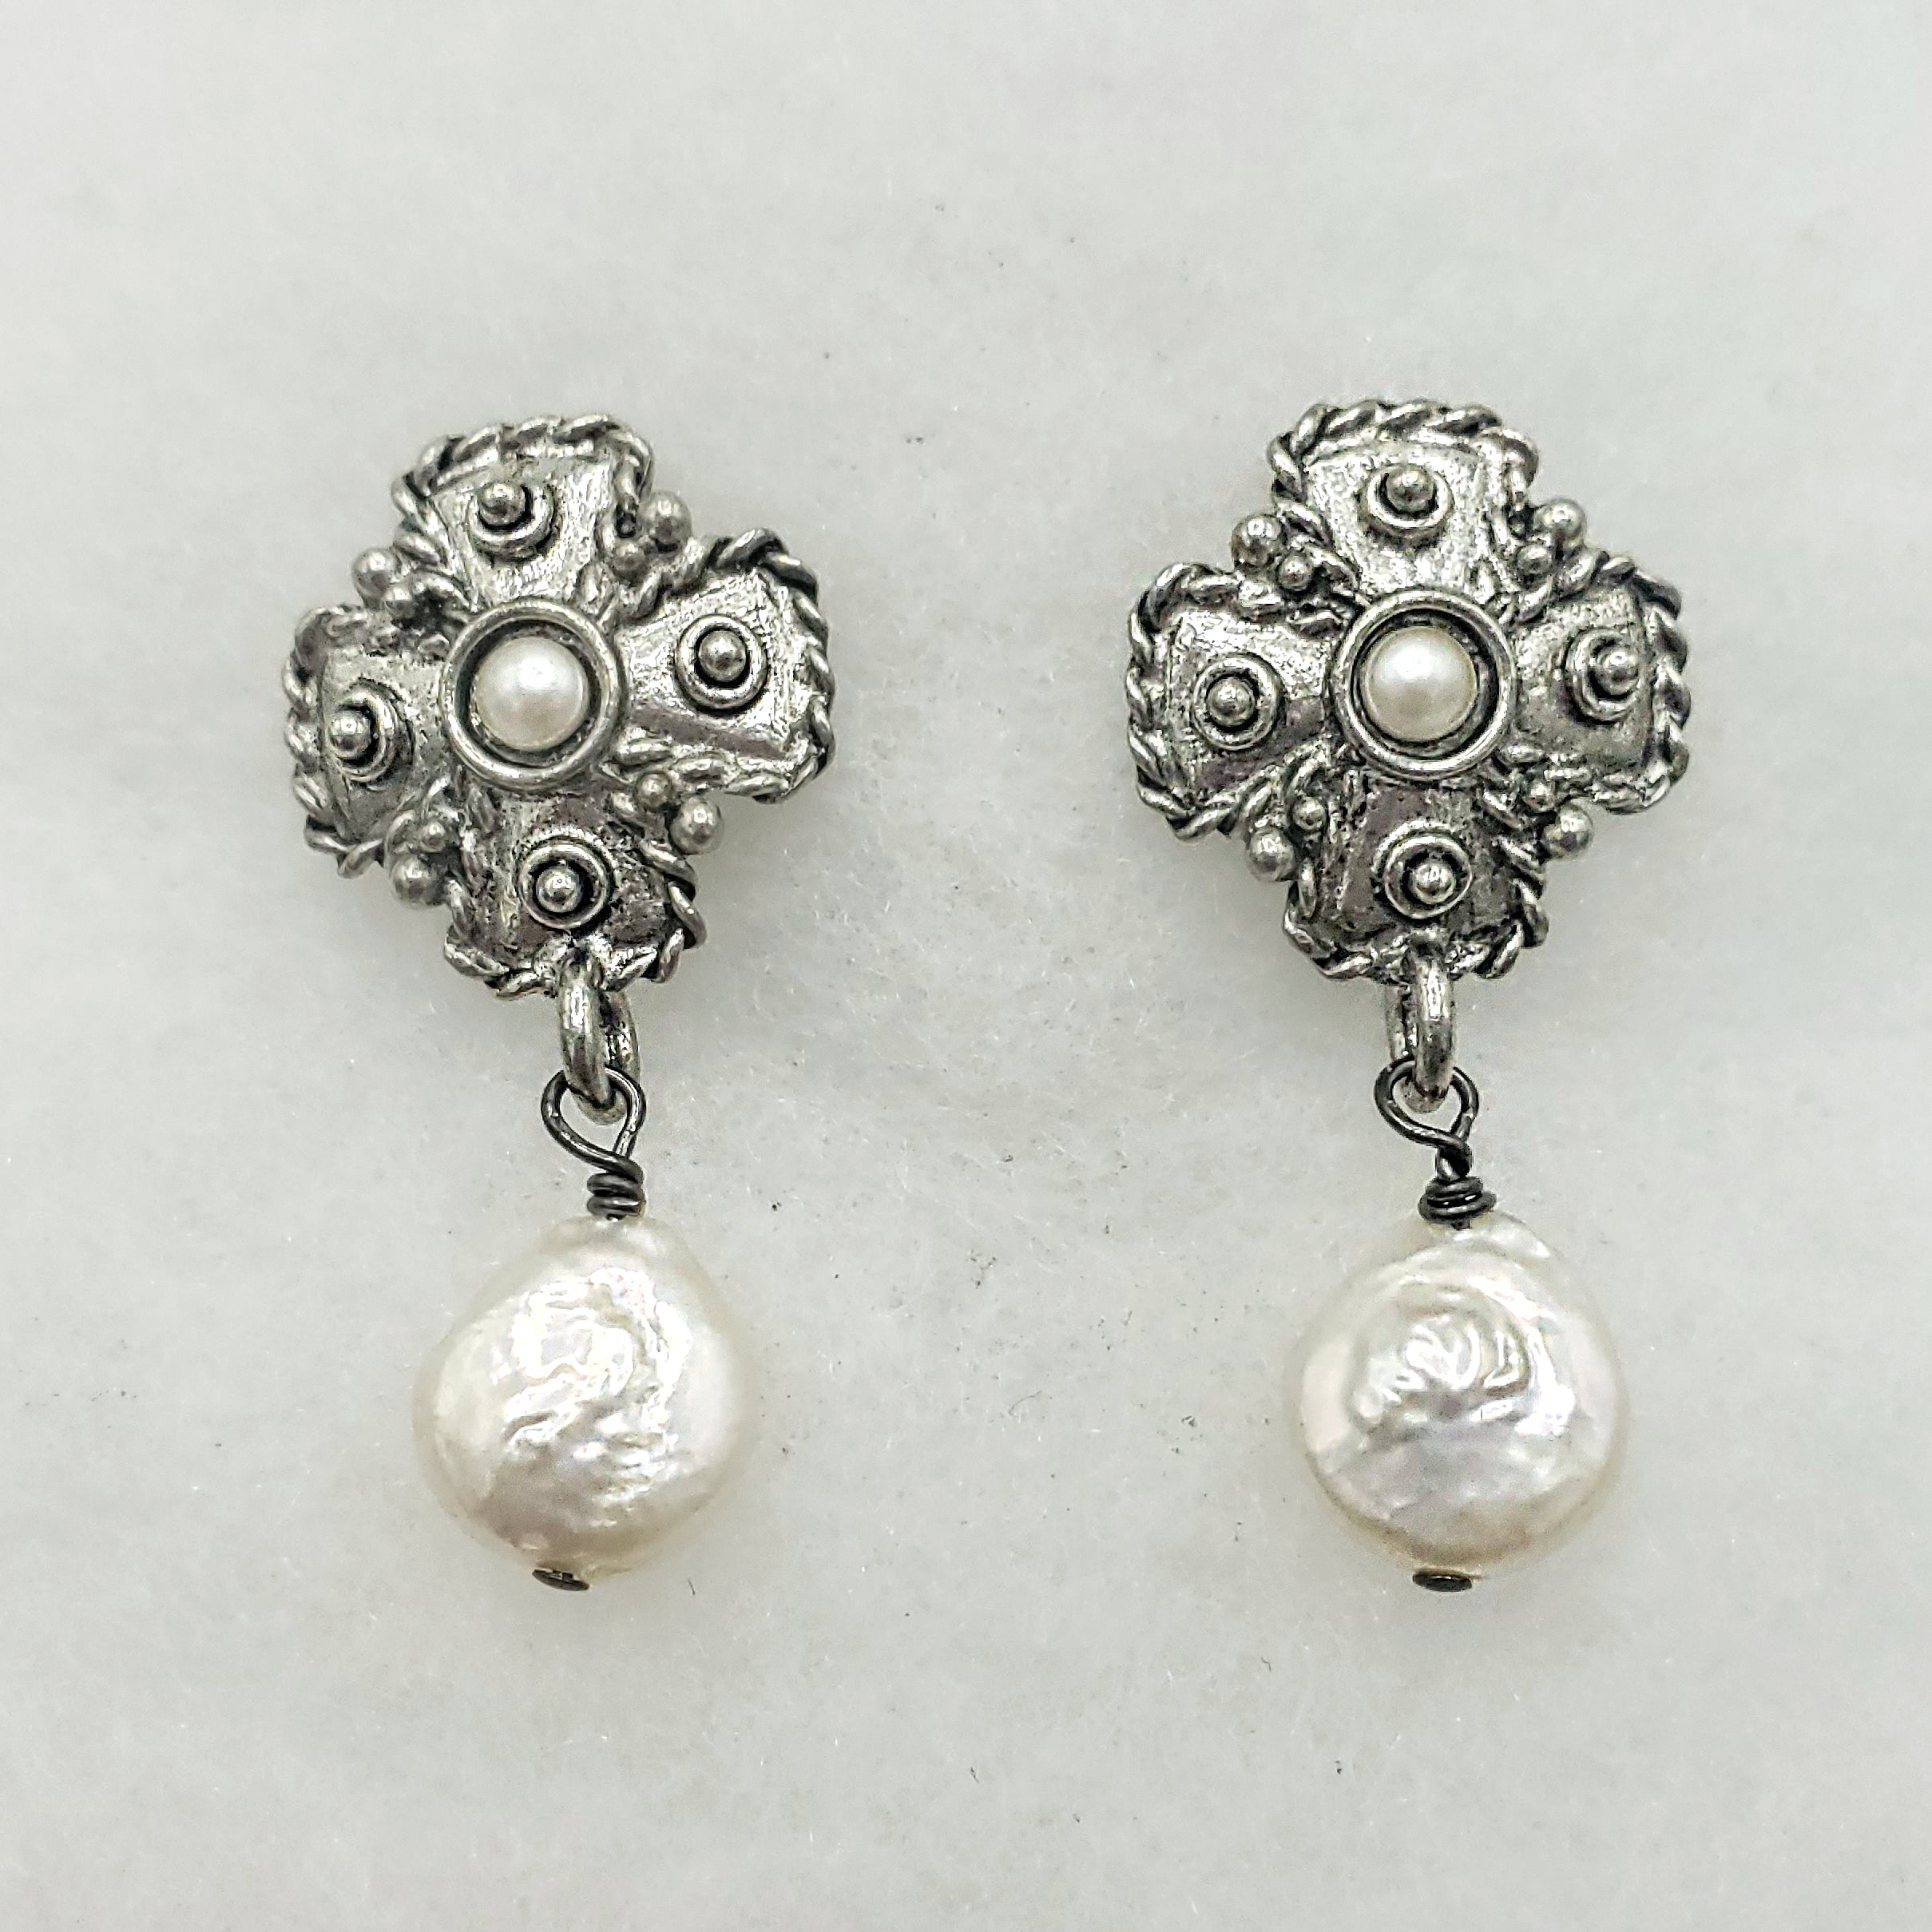 Wisdom Earrings